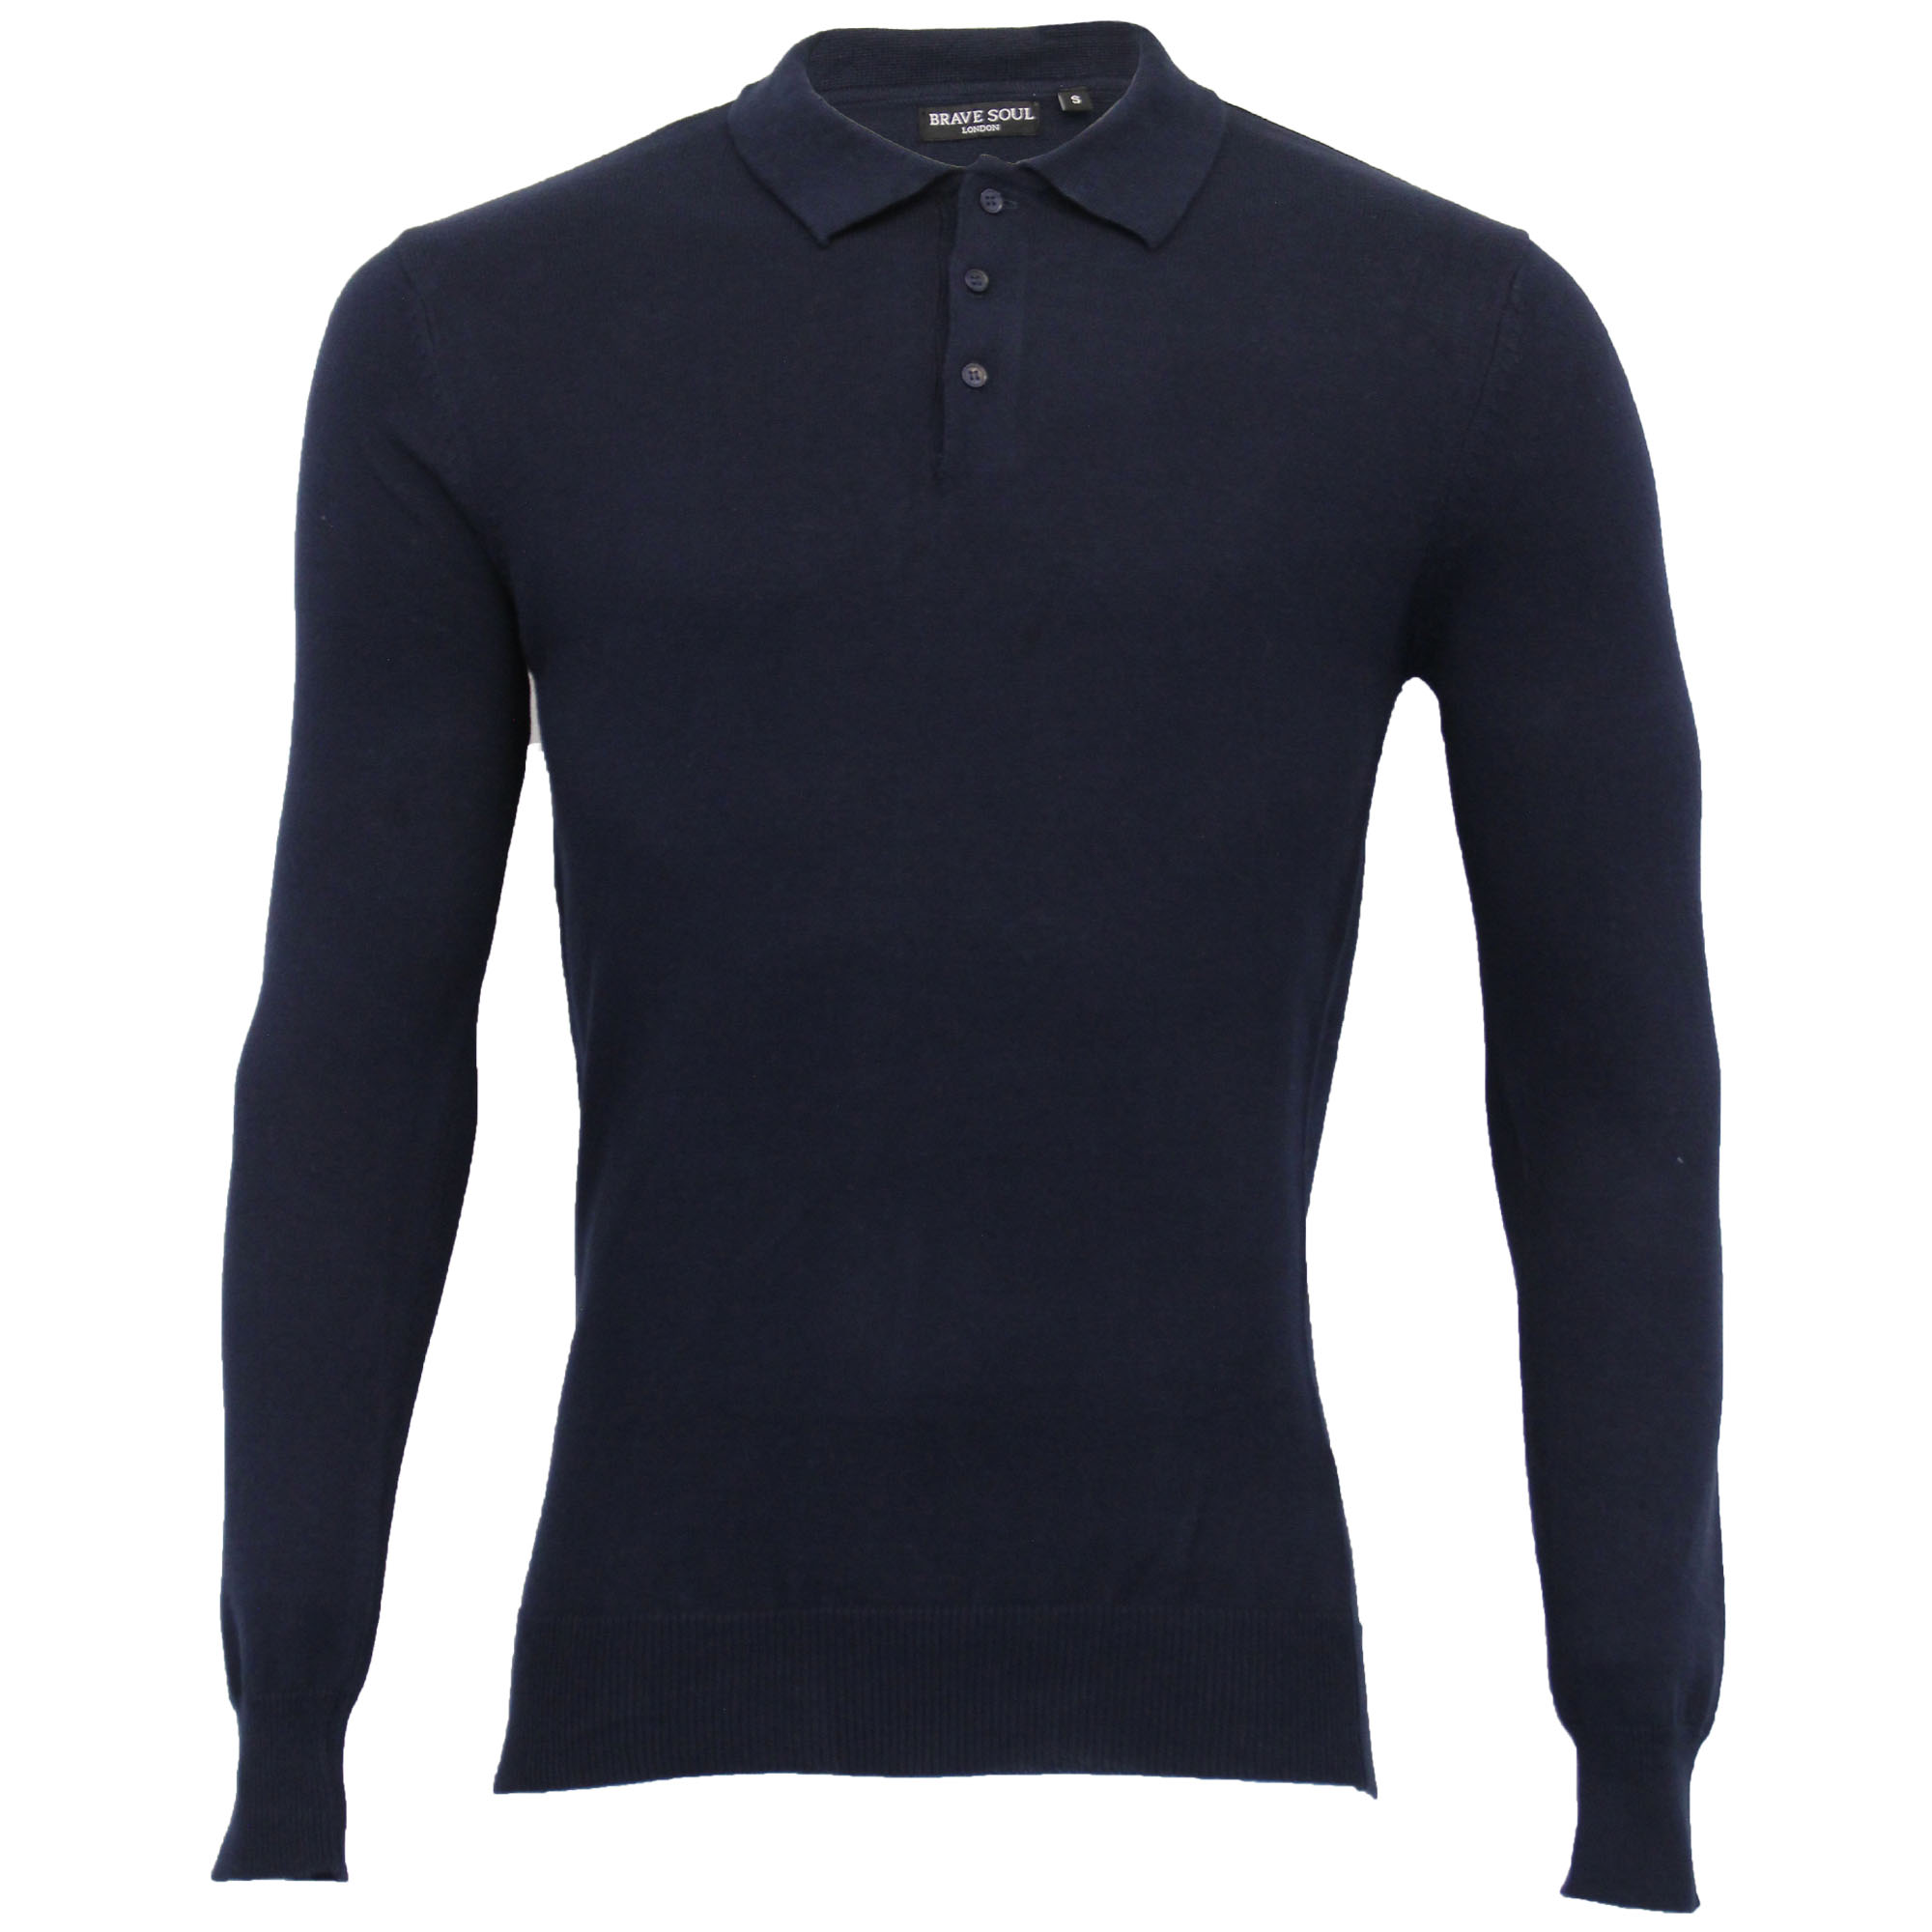 Mens-Knitted-Jumper-Brave-Soul-Polo-Top-Sweater-PLACKET-Pullover-Lightweight-New thumbnail 21